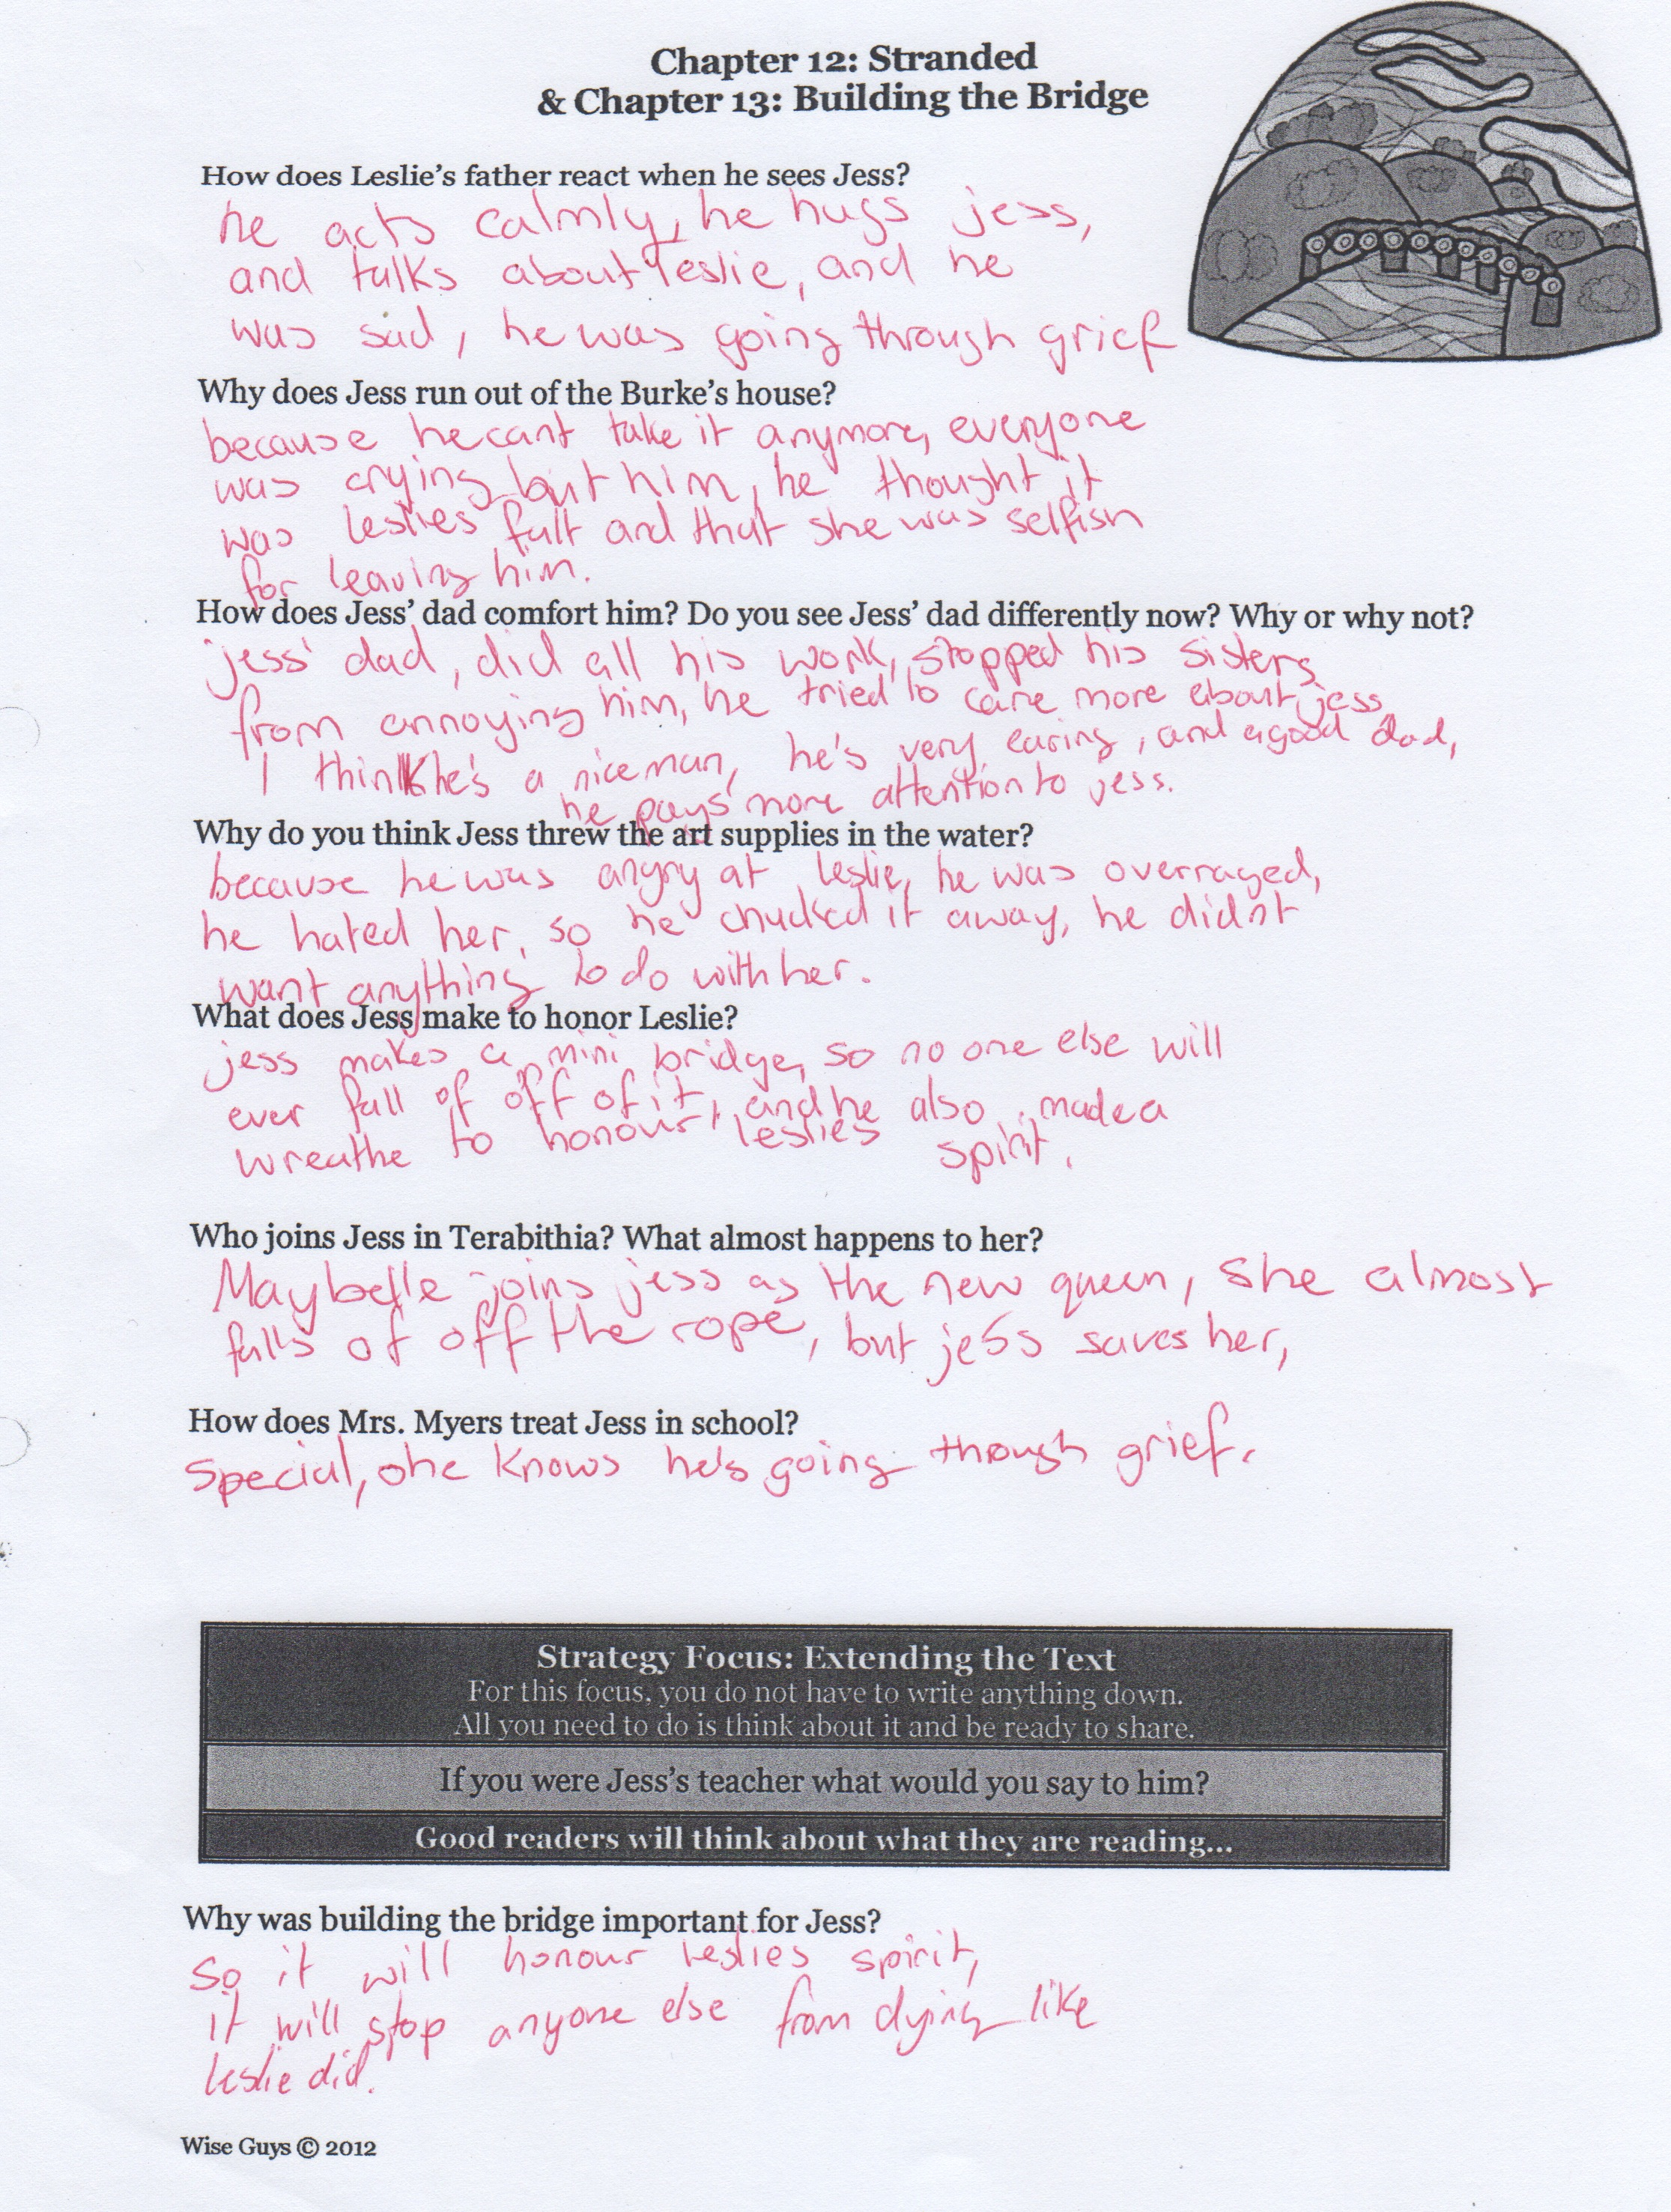 Worksheets Bridge To Terabithia Worksheets ms stephens novel bridge to terabithia by katherine paterson it could be a venn diagram for compare and contrast rewriting scene from the book or worksheet